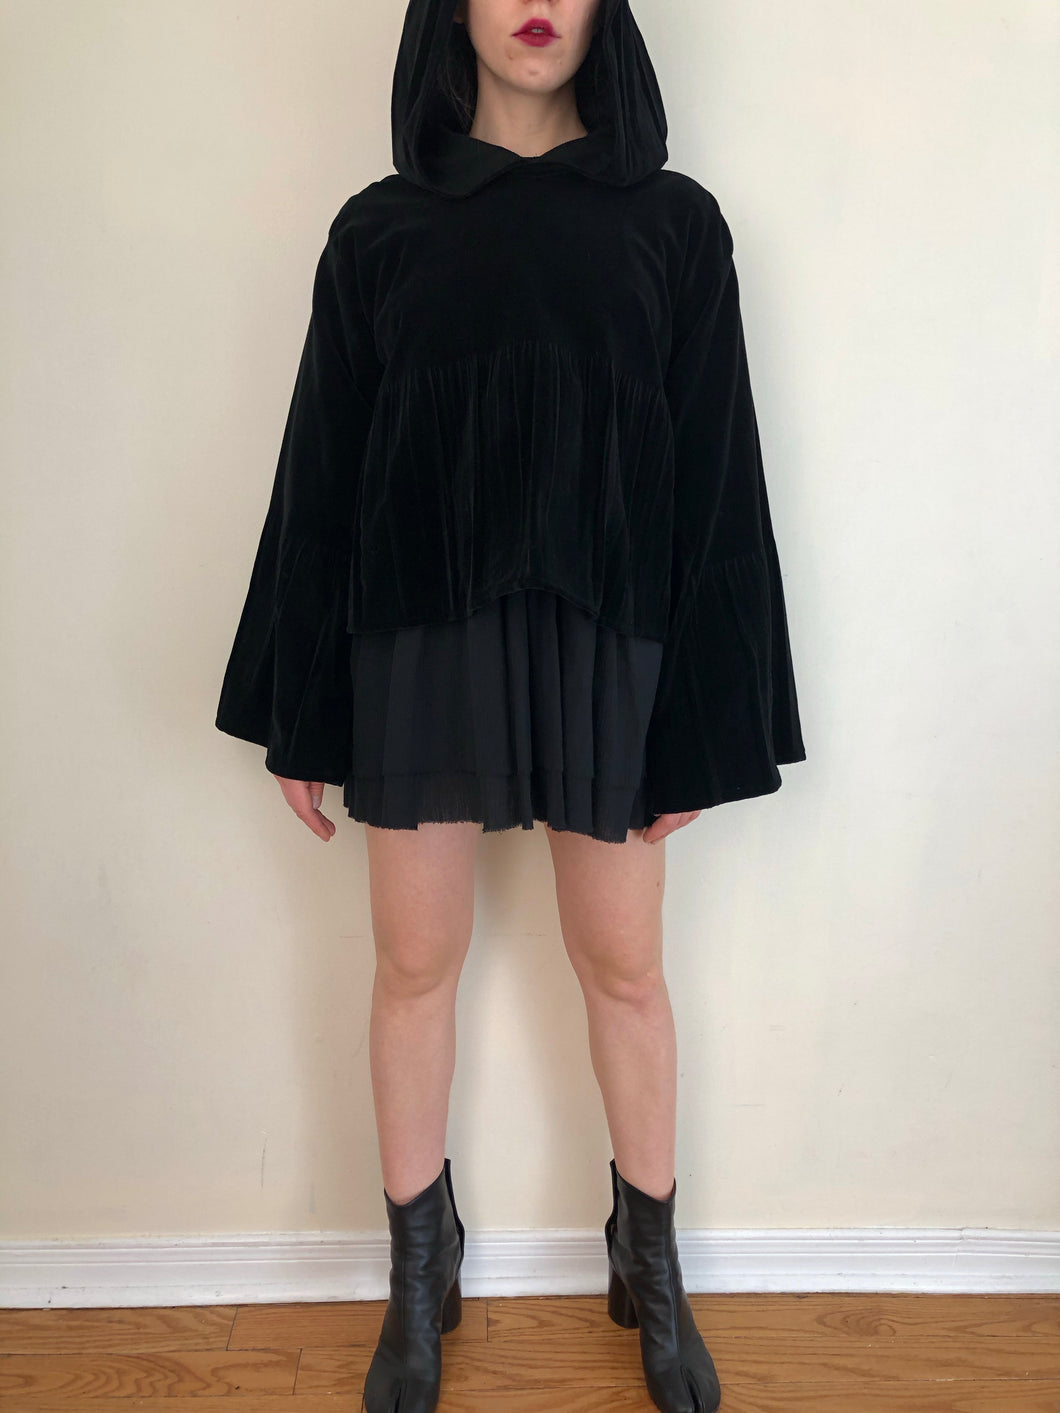 Sample Sale 2021: Bell Sleeve Hoodie in Cotton Velvet (S/M)